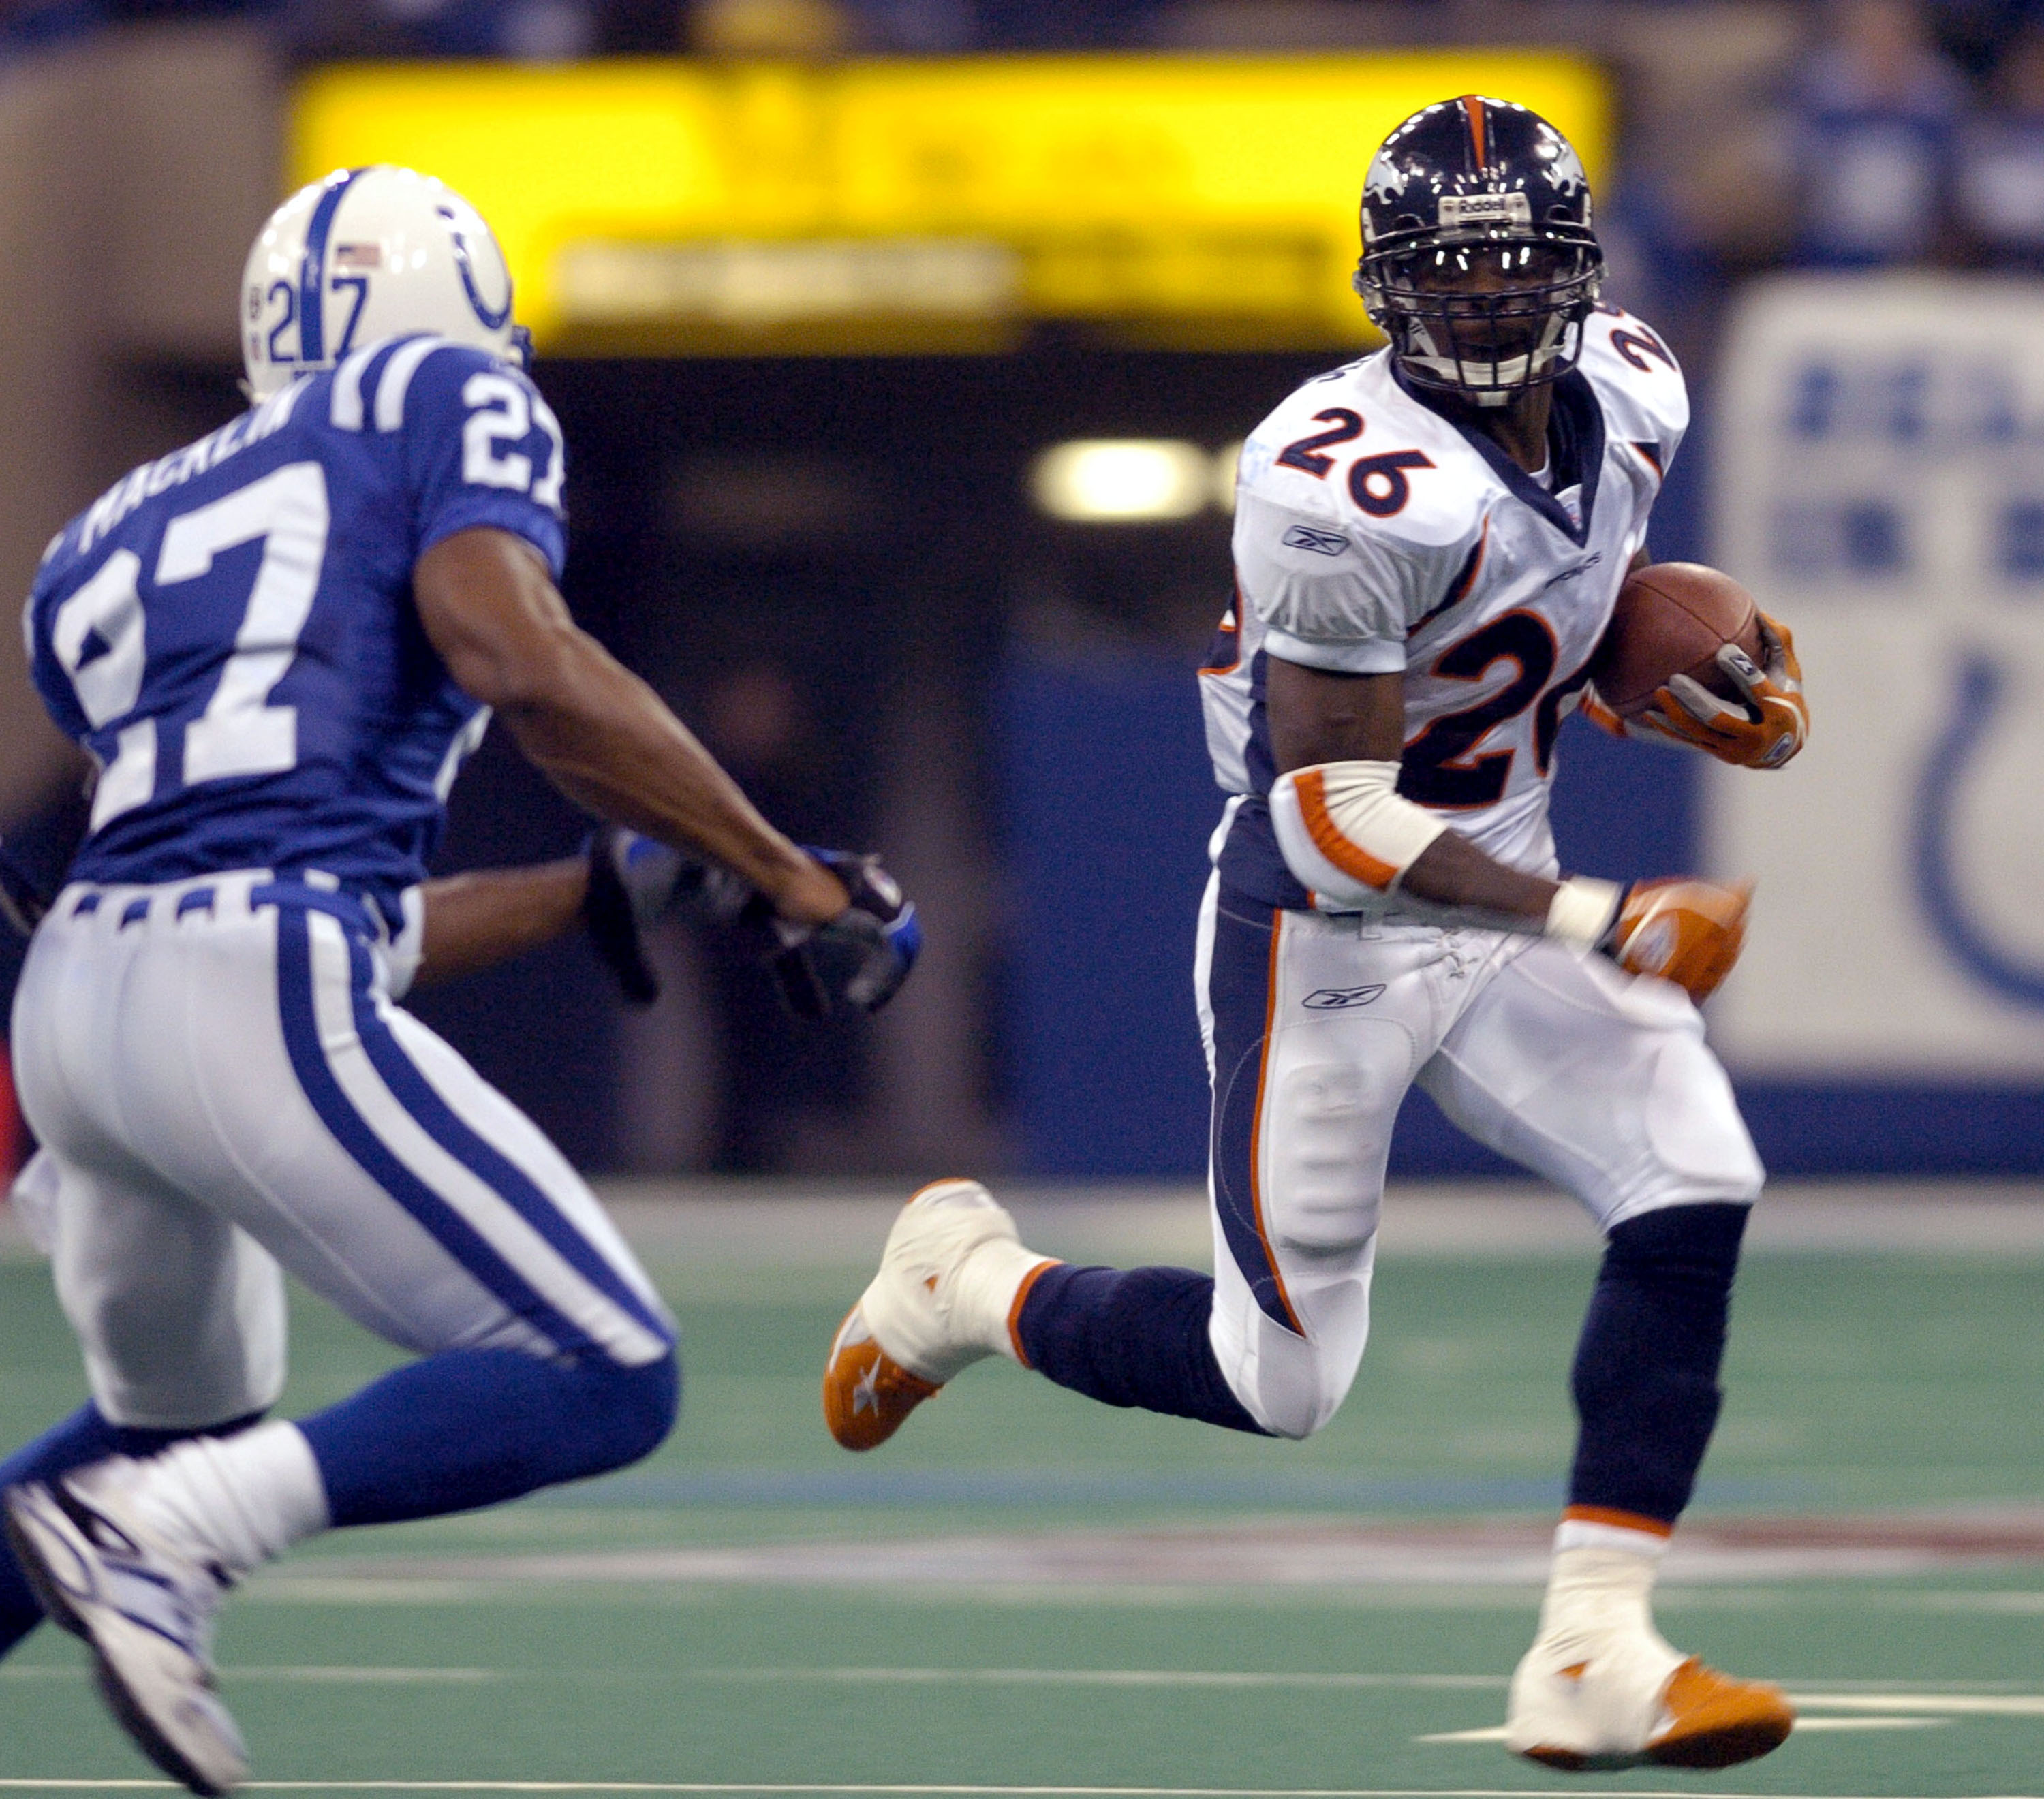 Denver Broncos running back Clinton Portis rushes for a gain at the RCA Dome, Indianapolis, Indiana, January 4, 2004 in an AFC wildcard playoff game.  (Photo by Al Messerschmidt/Getty Images)